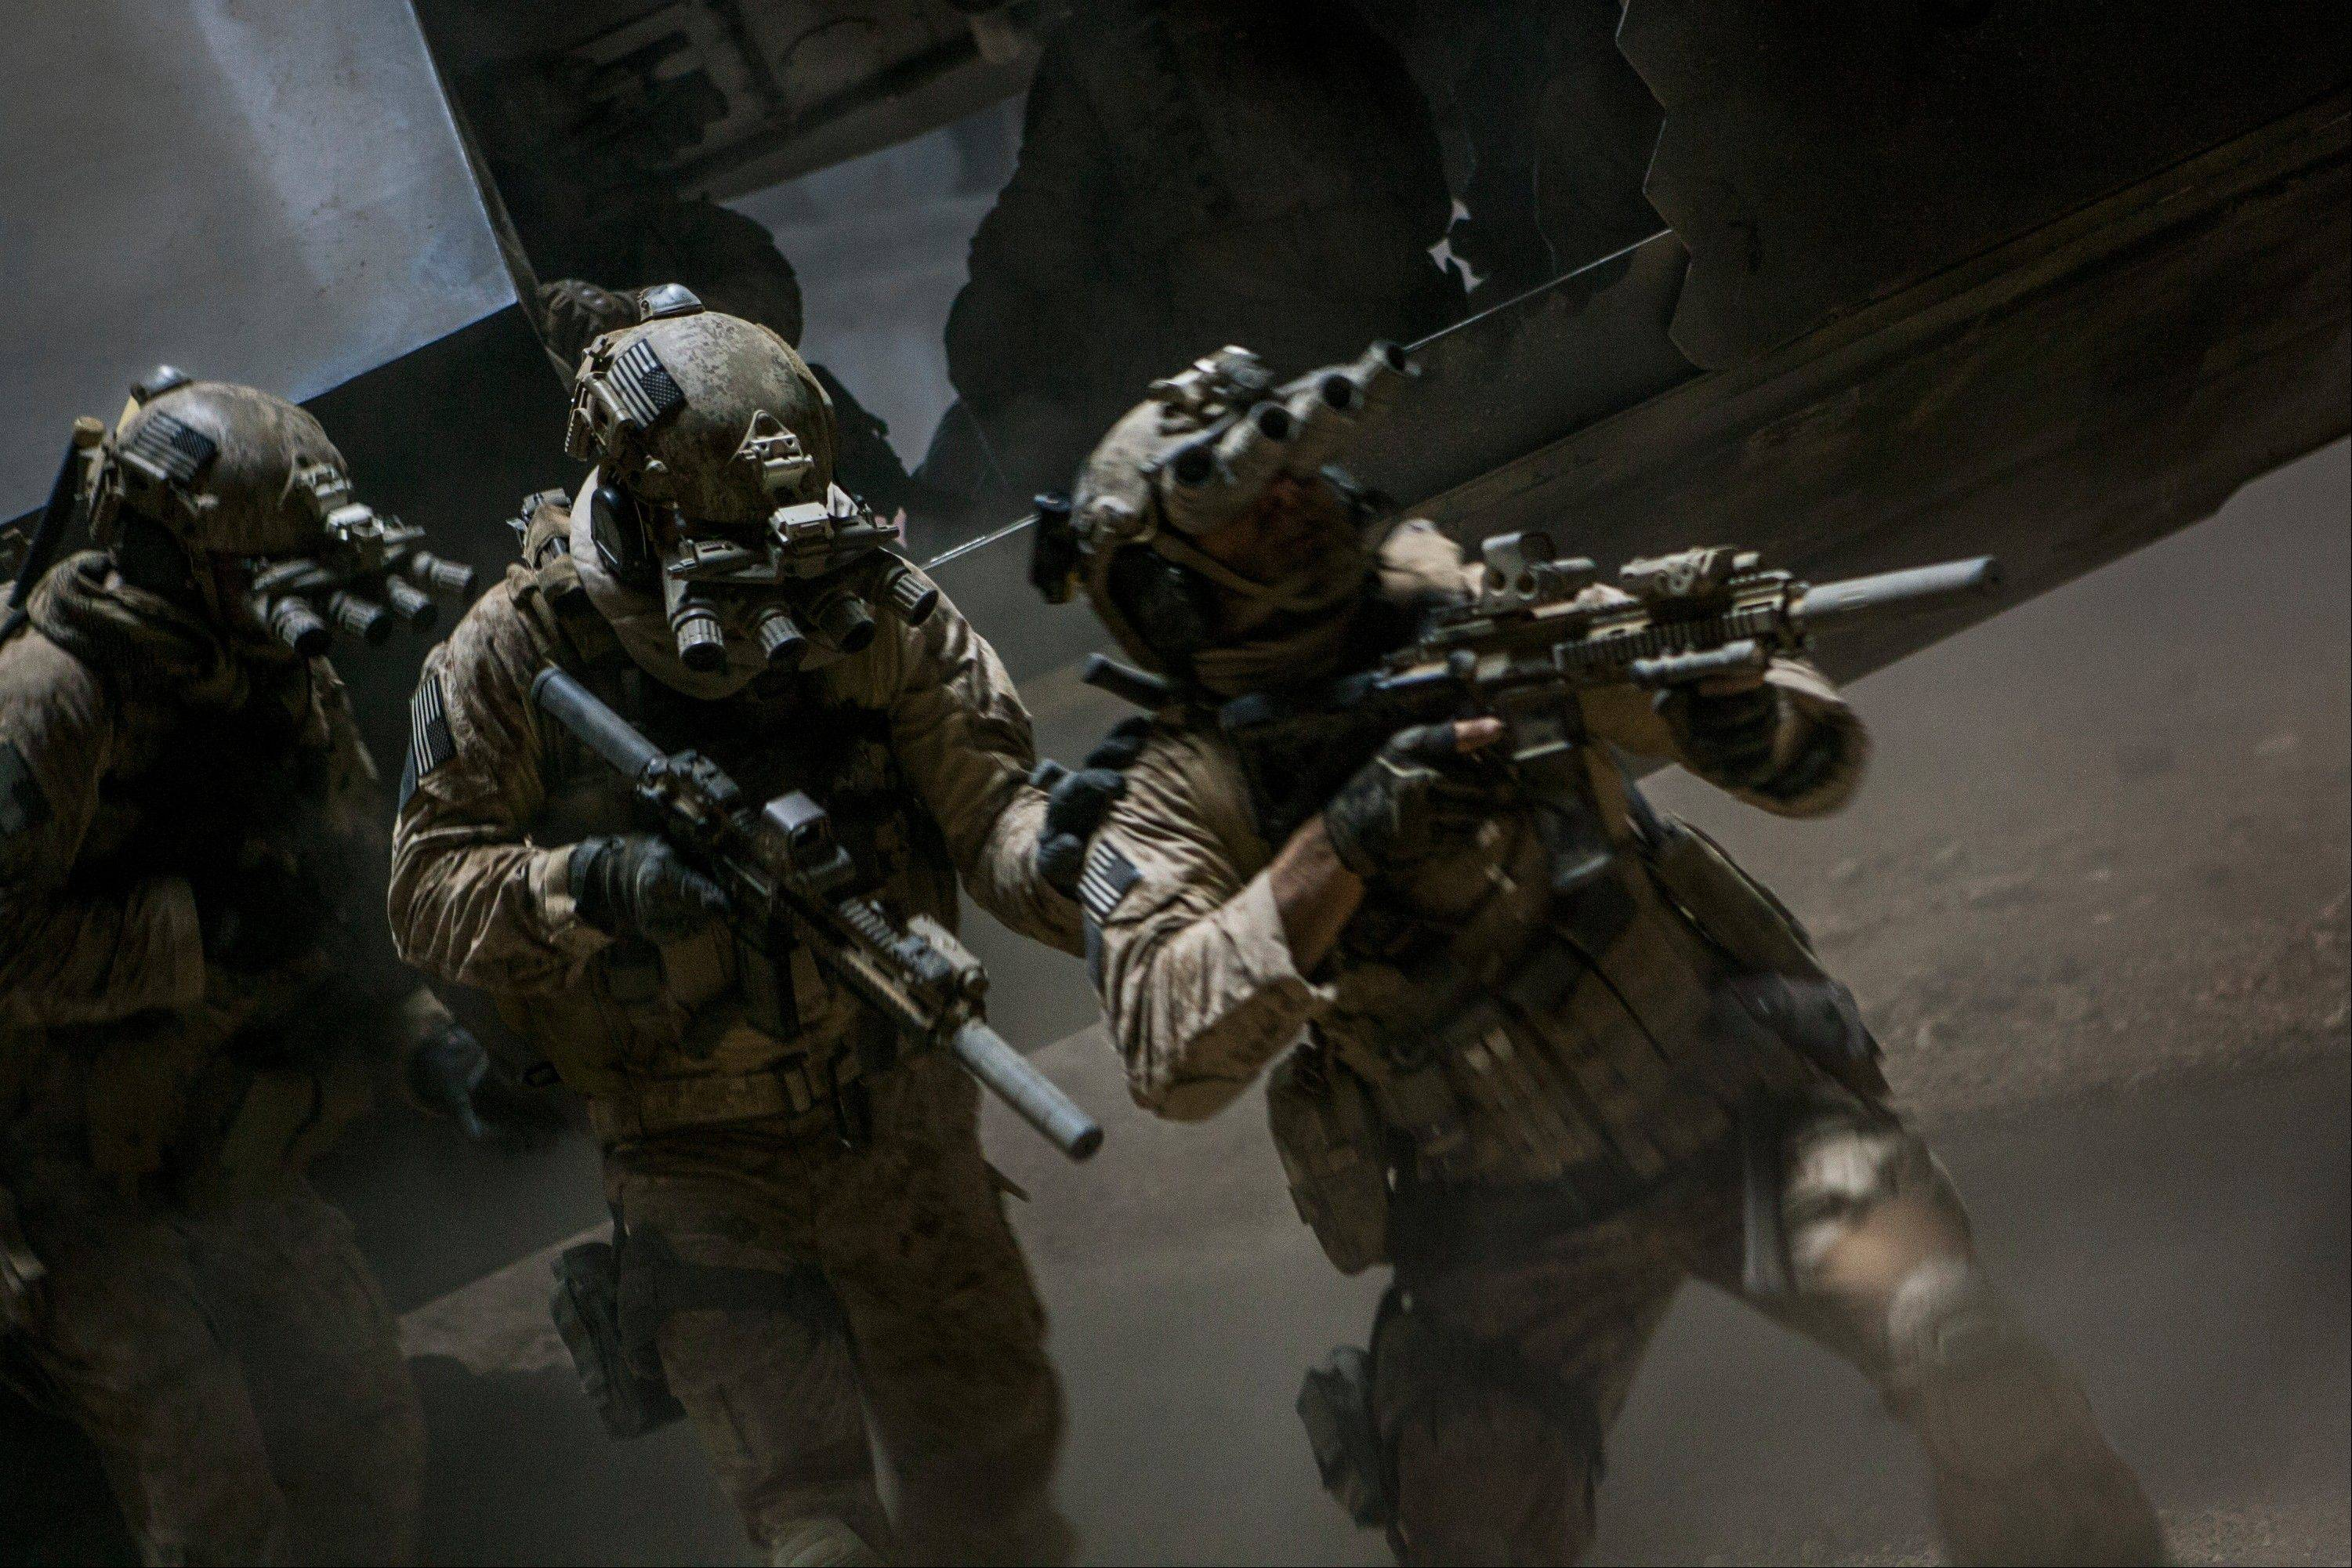 "Navy SEALs raid Osama bin Laden's suspected compound in Kathryn Bigelow's fact-based thriller ""Zero Dark Thirty."" Mount Prospect native Alex Ullrich created some of the sound effects for the movie."